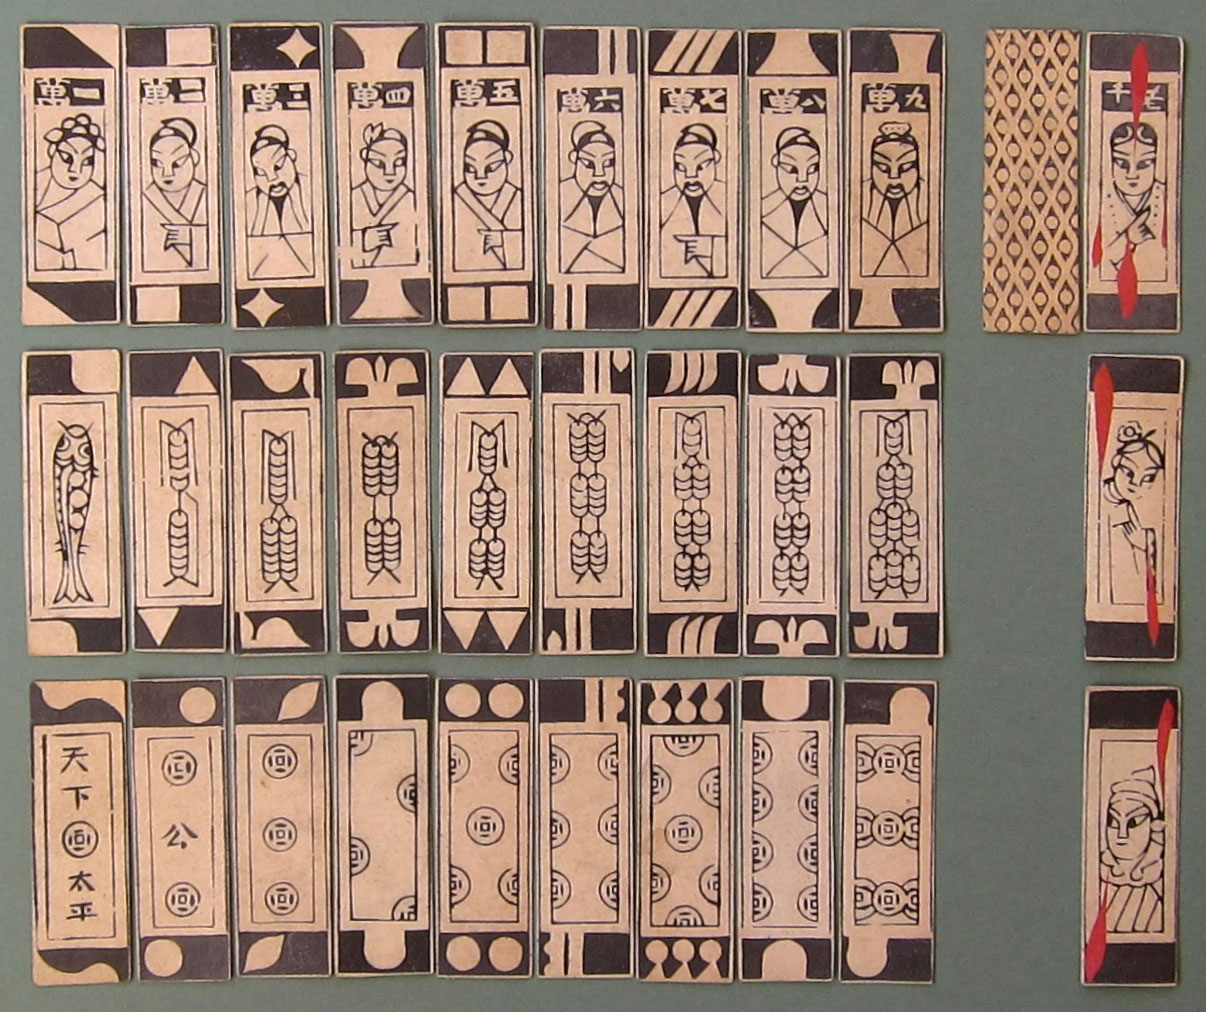 lao qian pai, China, c.1905. 30 of 120 cards. The three suits bear naturalistic coins for the 'Cash' suit and strings of coins for the 'Strings of Cash' suit